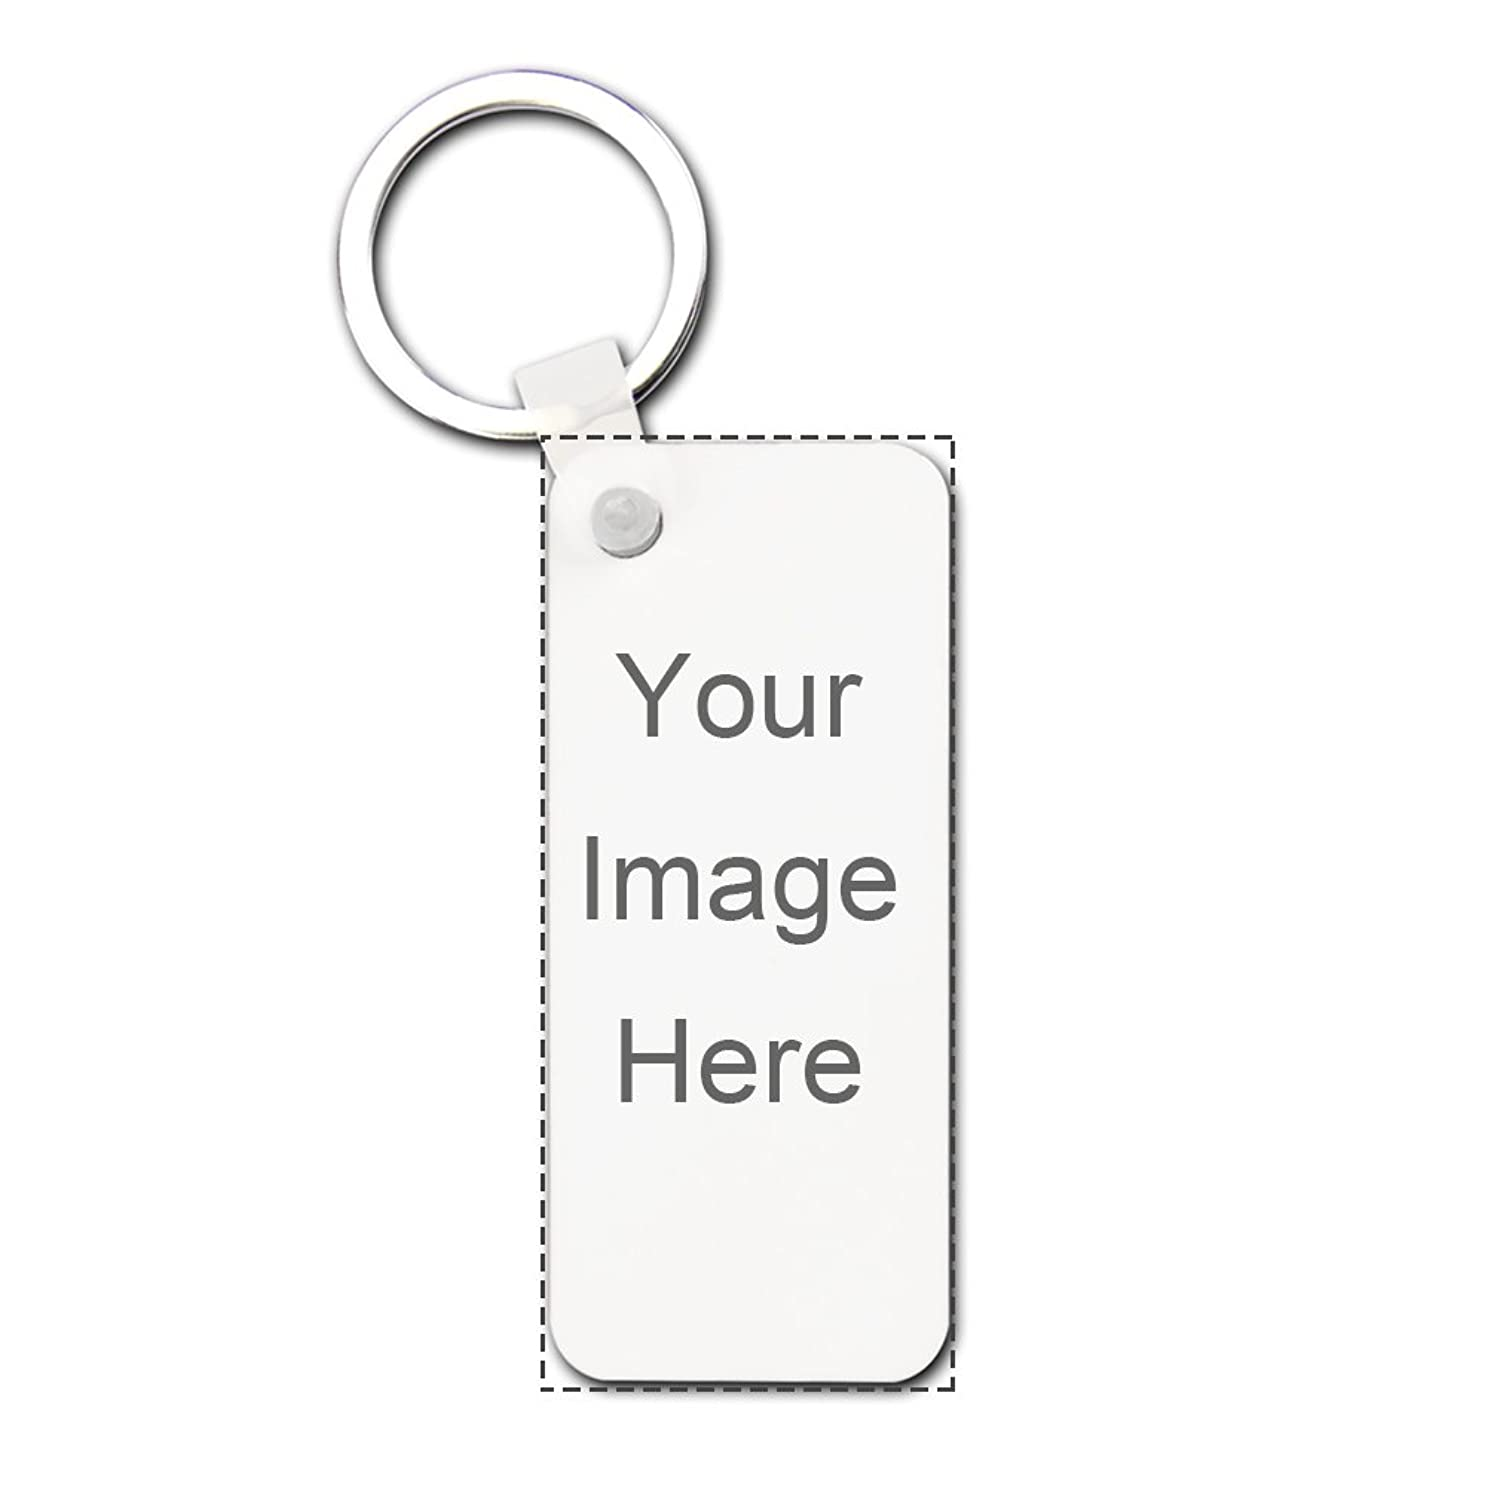 Design Prinablet photo or text Keychains Custom Personalized Hardboard Rectangle Keychains